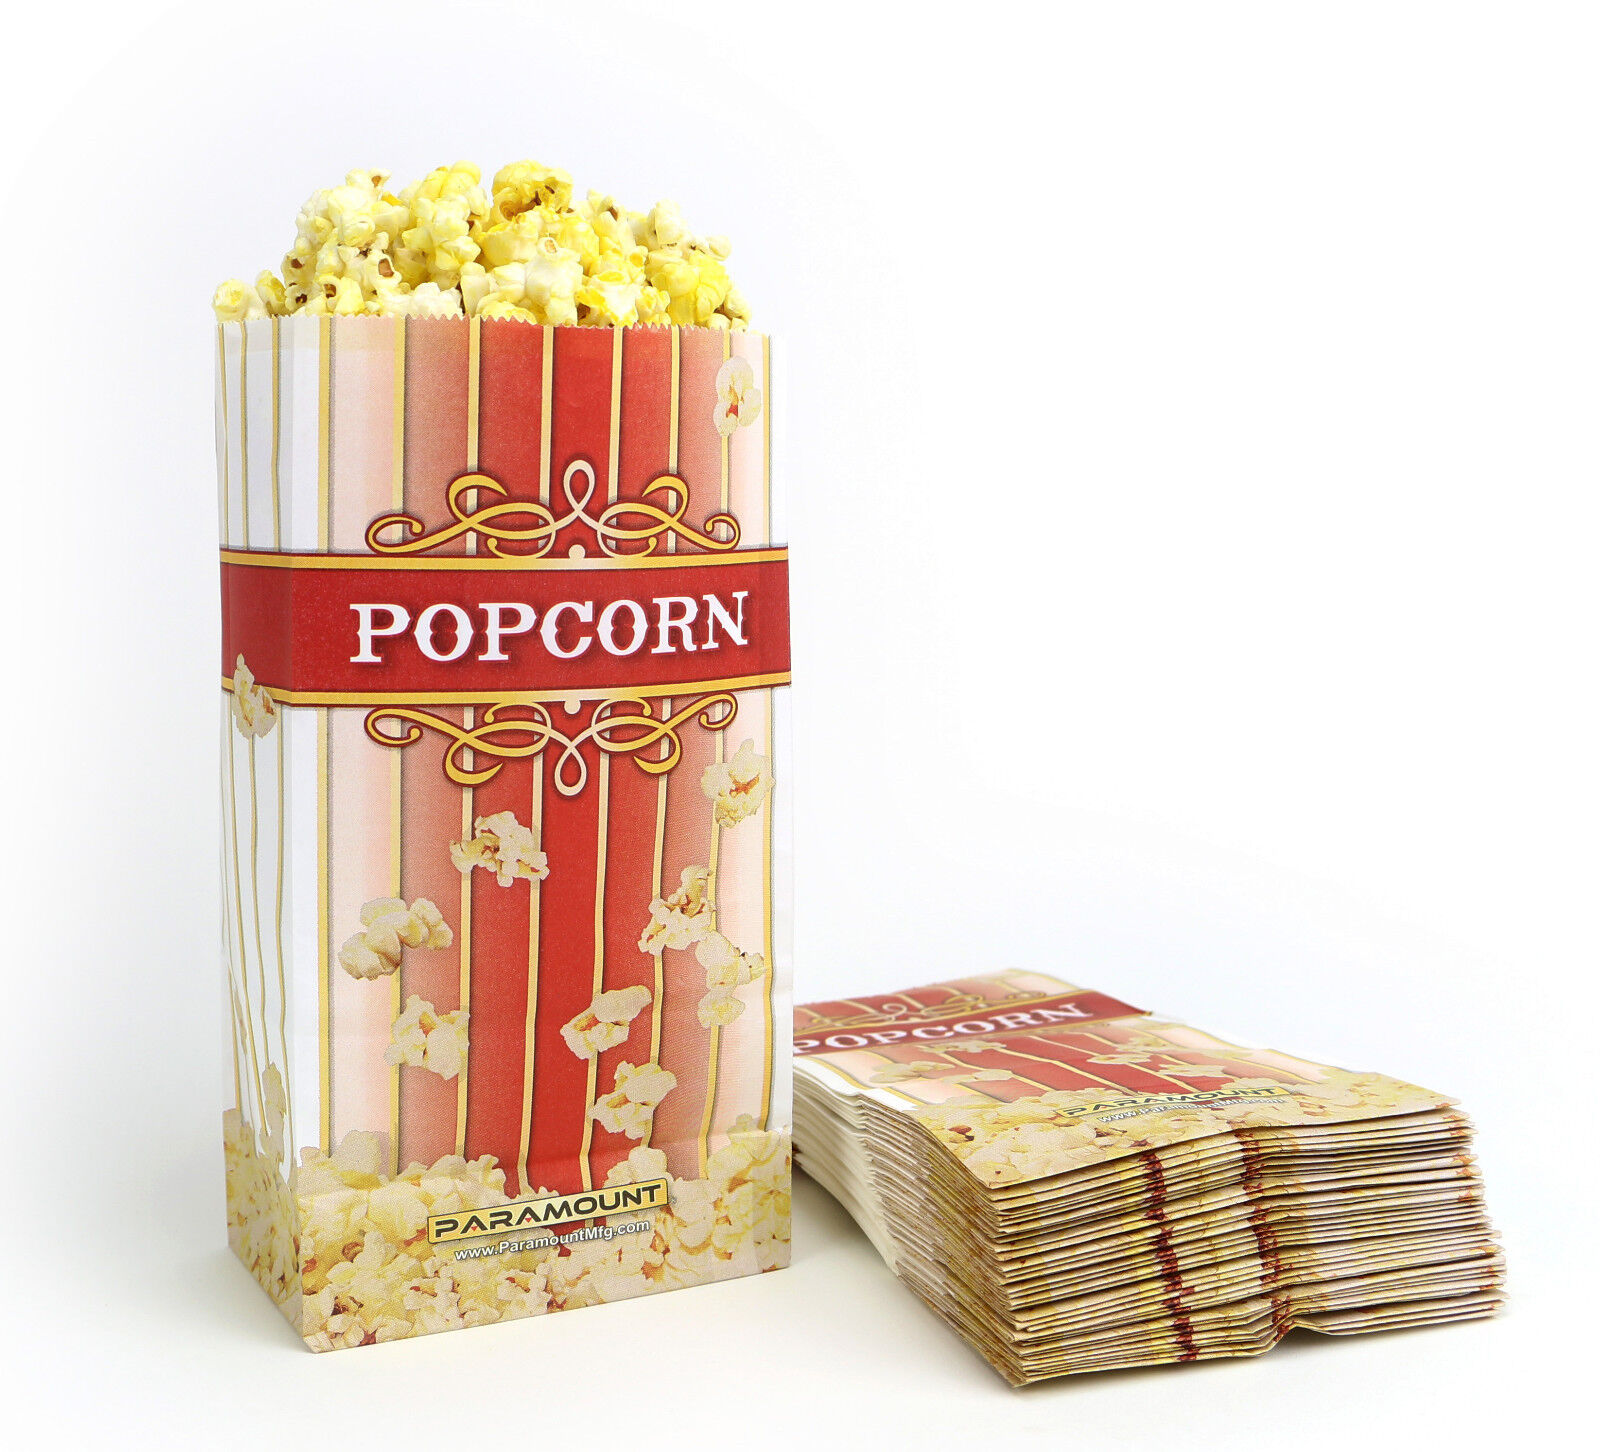 100-popcorn-serving-bags-large-standalone-flat-bottom-paper-bag-style